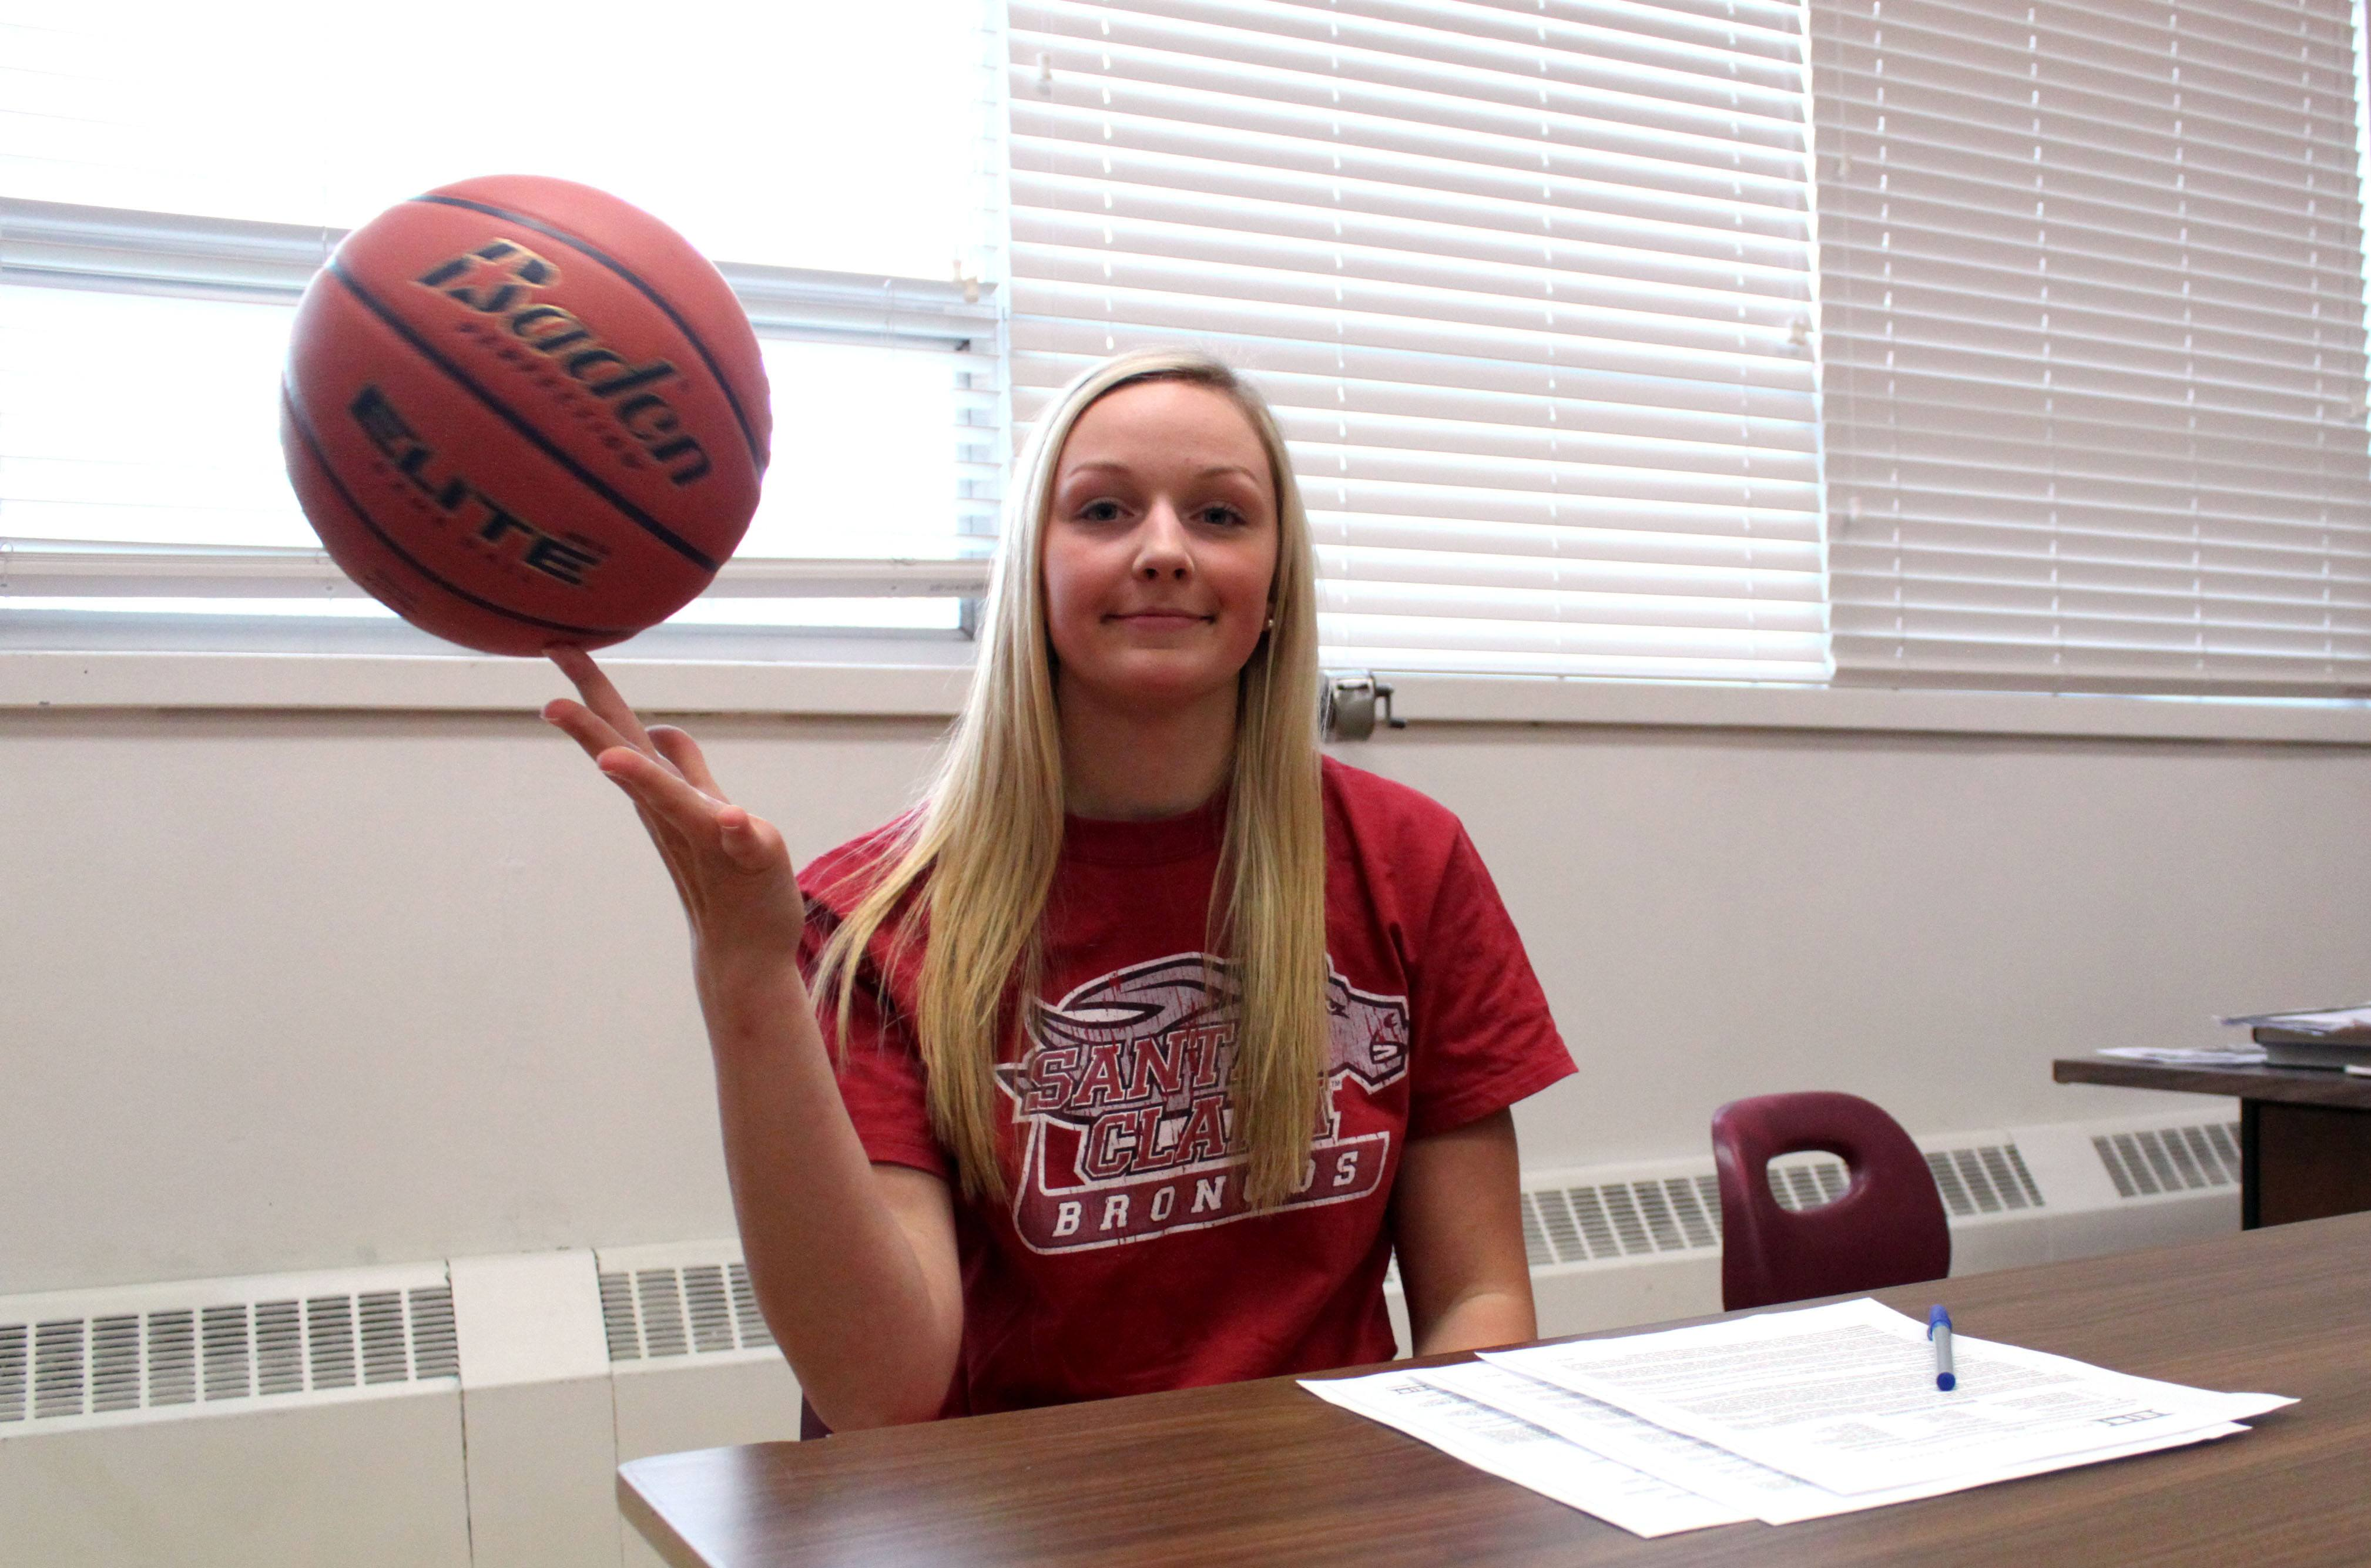 BASKETBALL: Surrey Holy Cross guard to follow in footsteps of Steve Nash